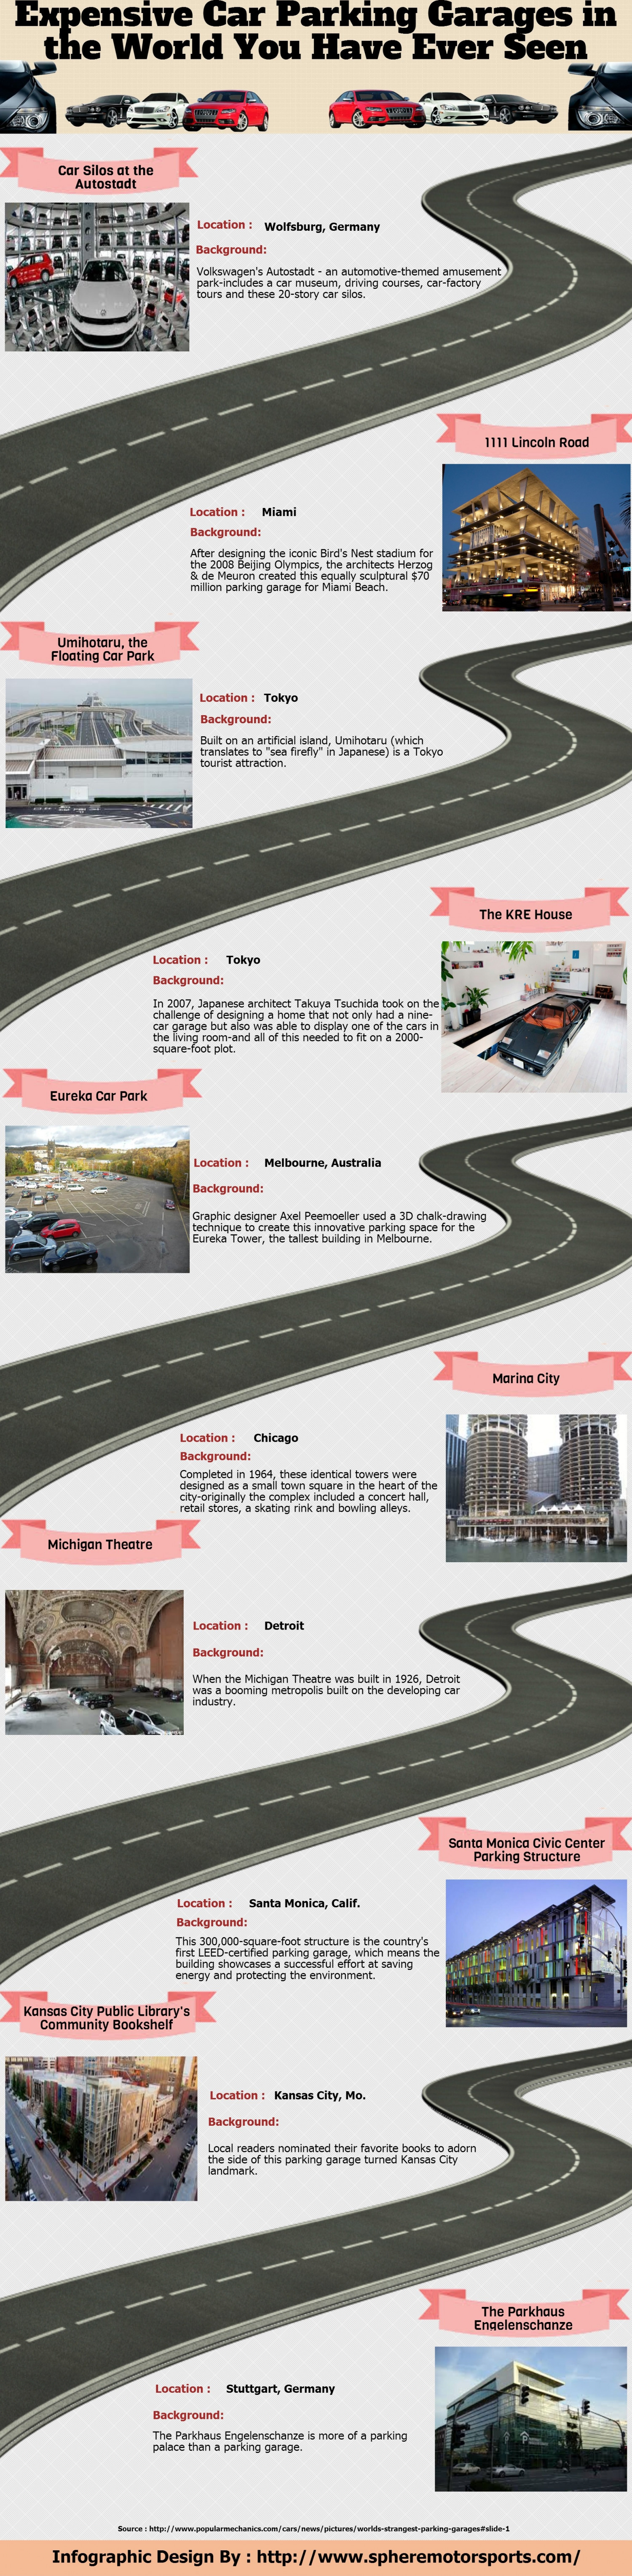 Expensive Car Parking Garages in the World You Have Ever Seen Infographic